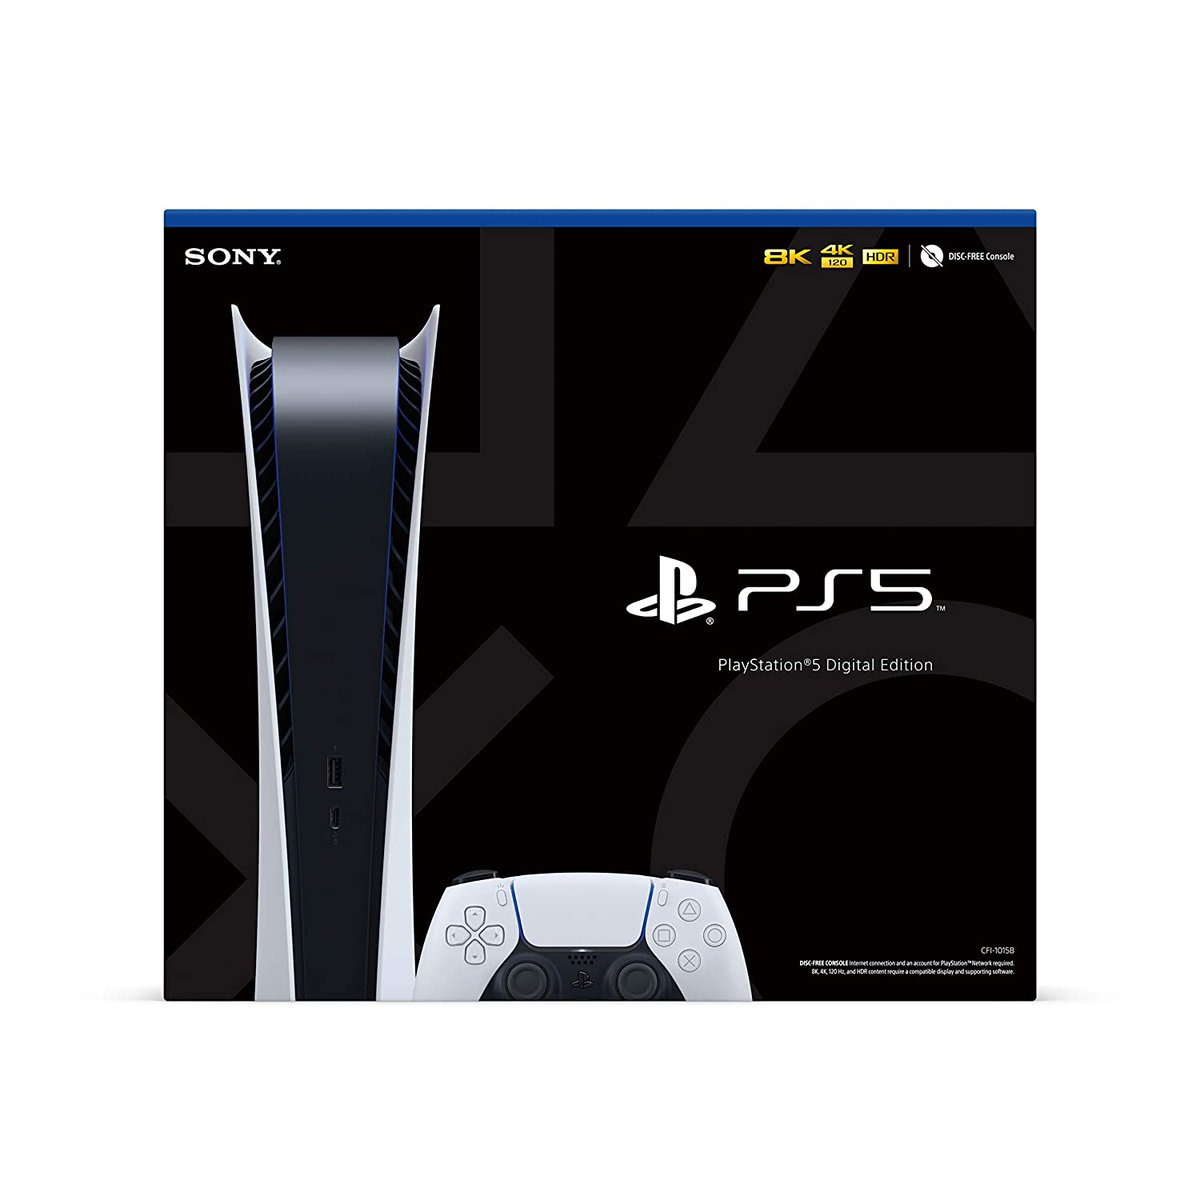 KEEP TRYING TO CART  Digital PS5 Restock on Amazon